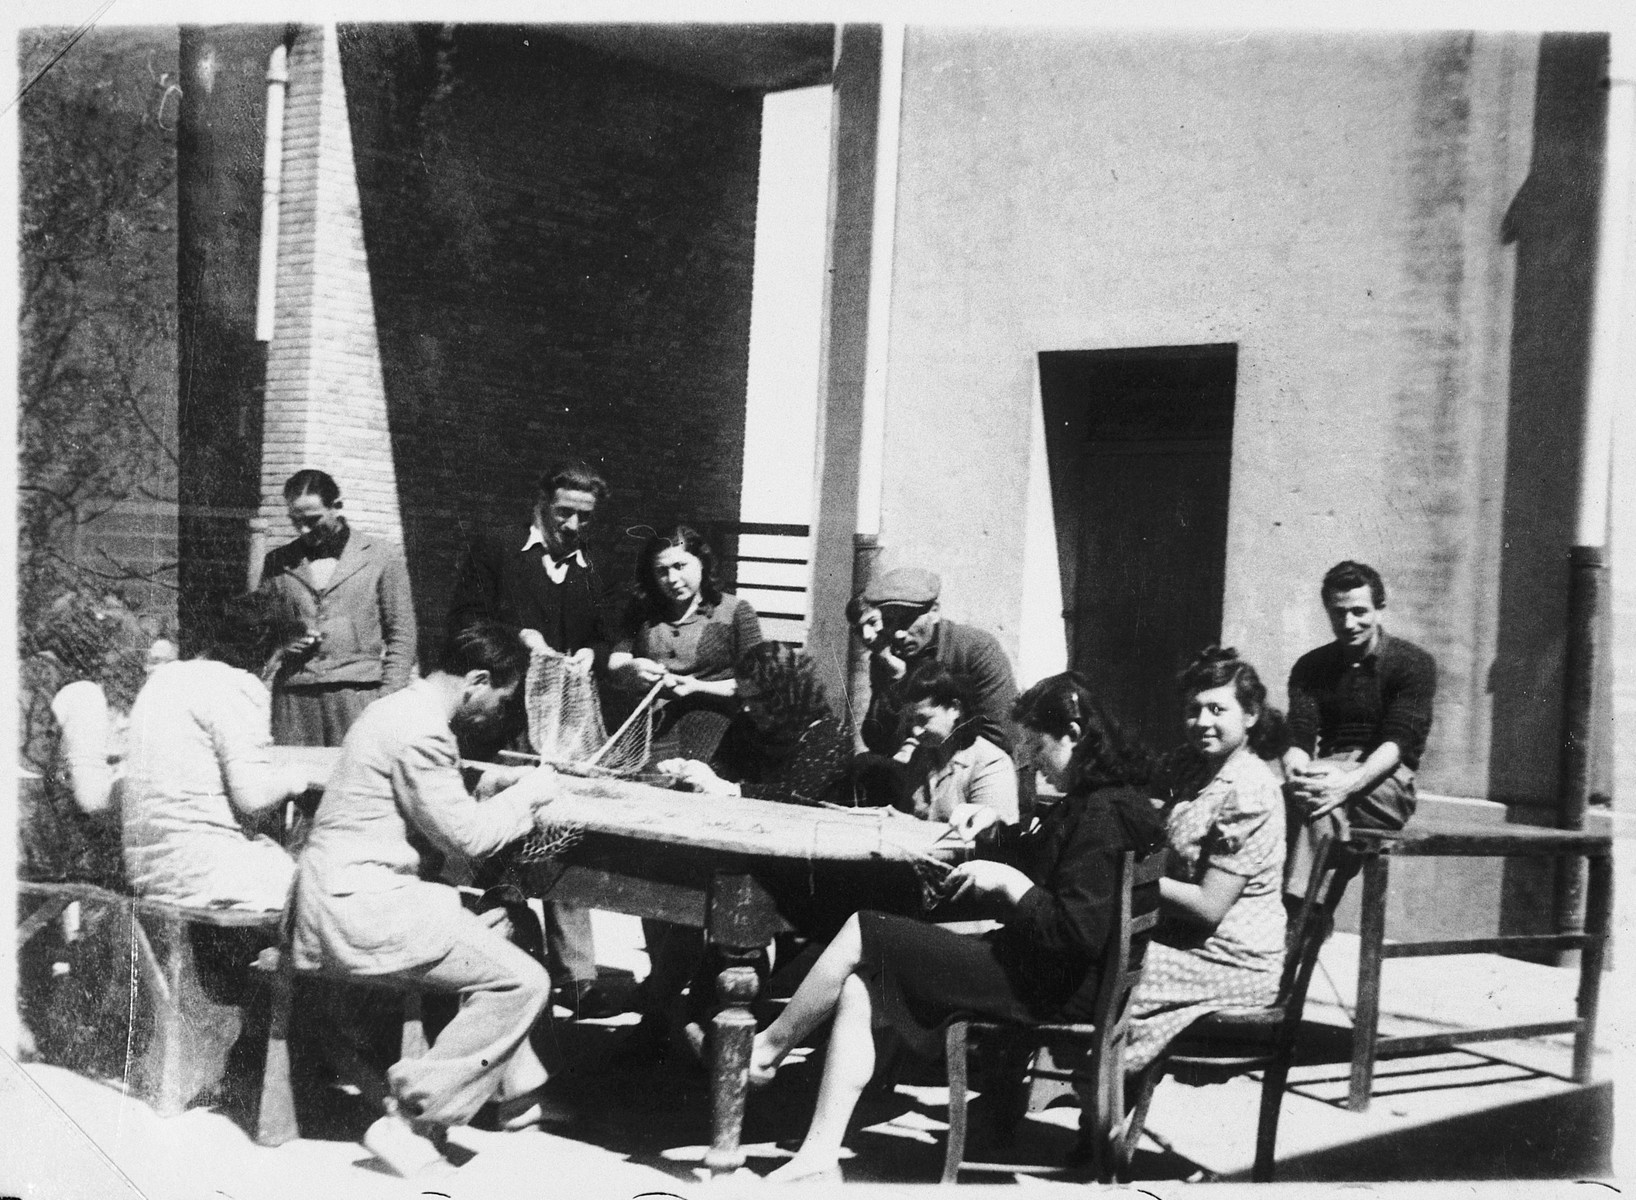 Jewish DPs weave fishing nets at the Migdalor hachshara, a maritime Zionist collective in Fano, Italy.  Among those pictured are: Carola Shlomovitz (standing in the center), and Sara Faitlovitz (foreground, right).